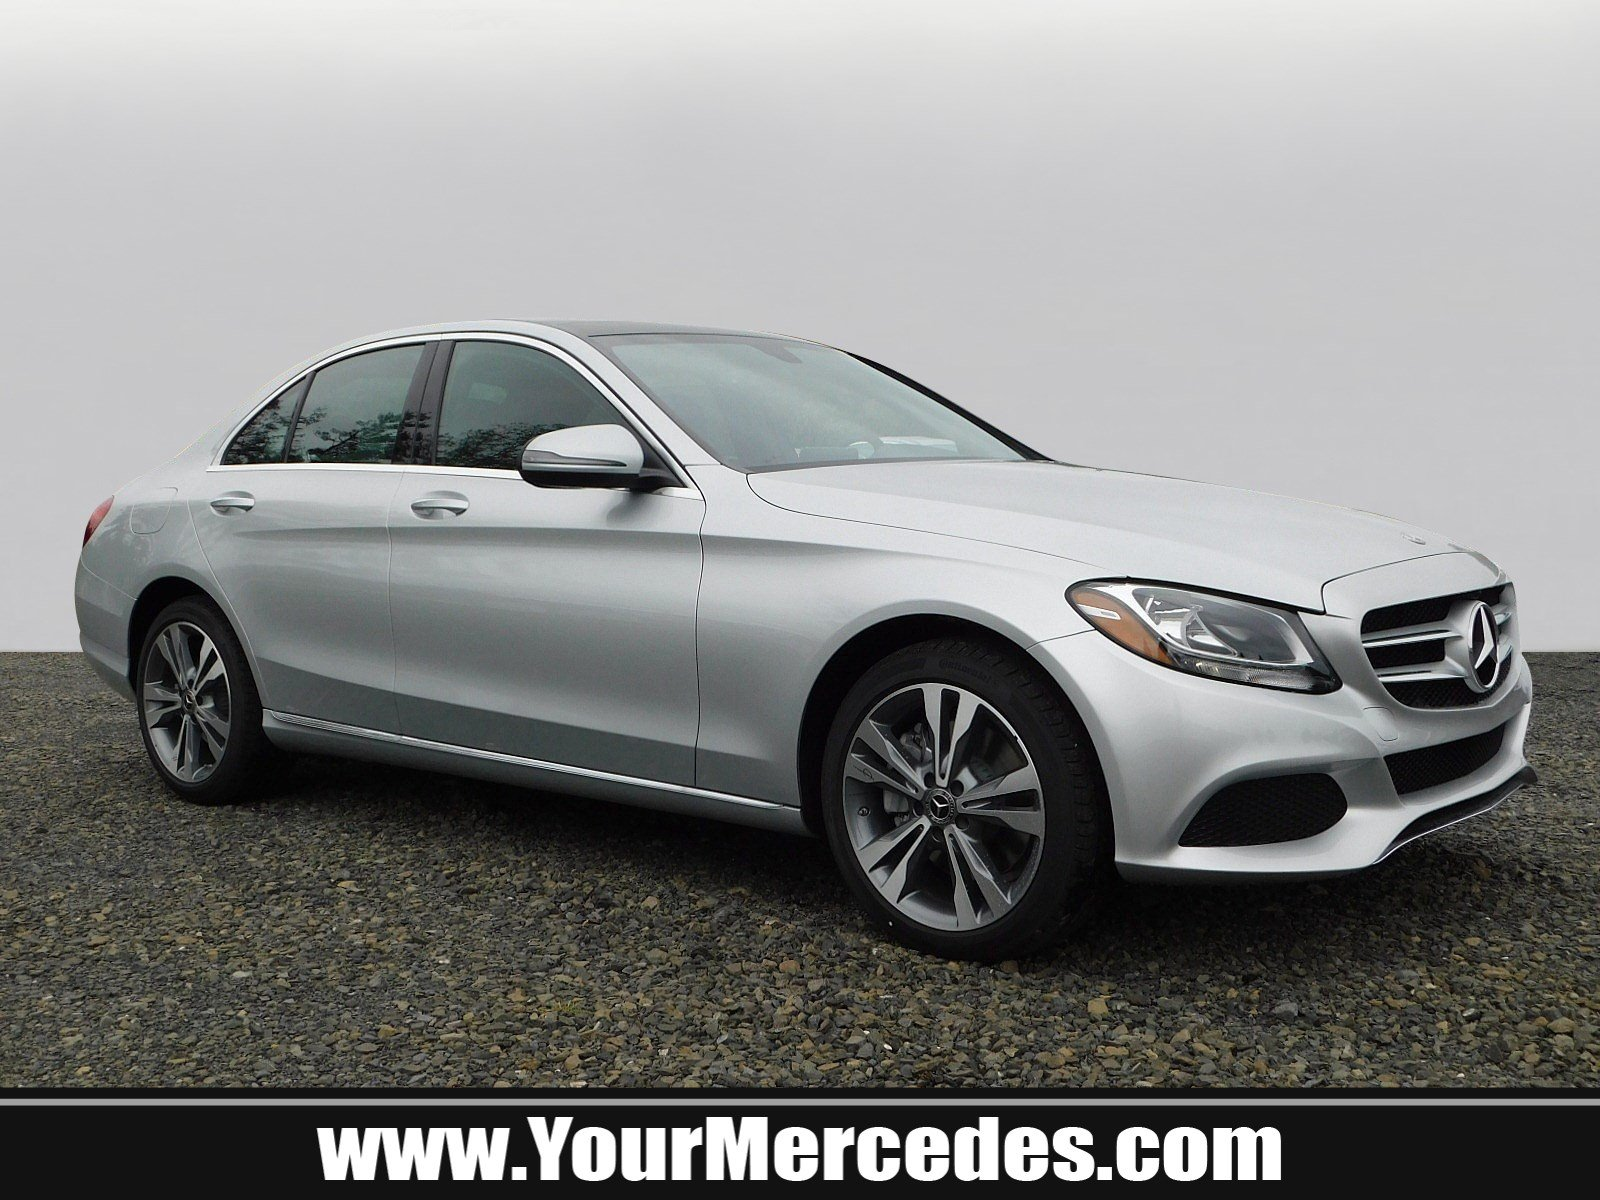 New 2018 Mercedes Benz C Class C 300 4dr Car in Fort Washington